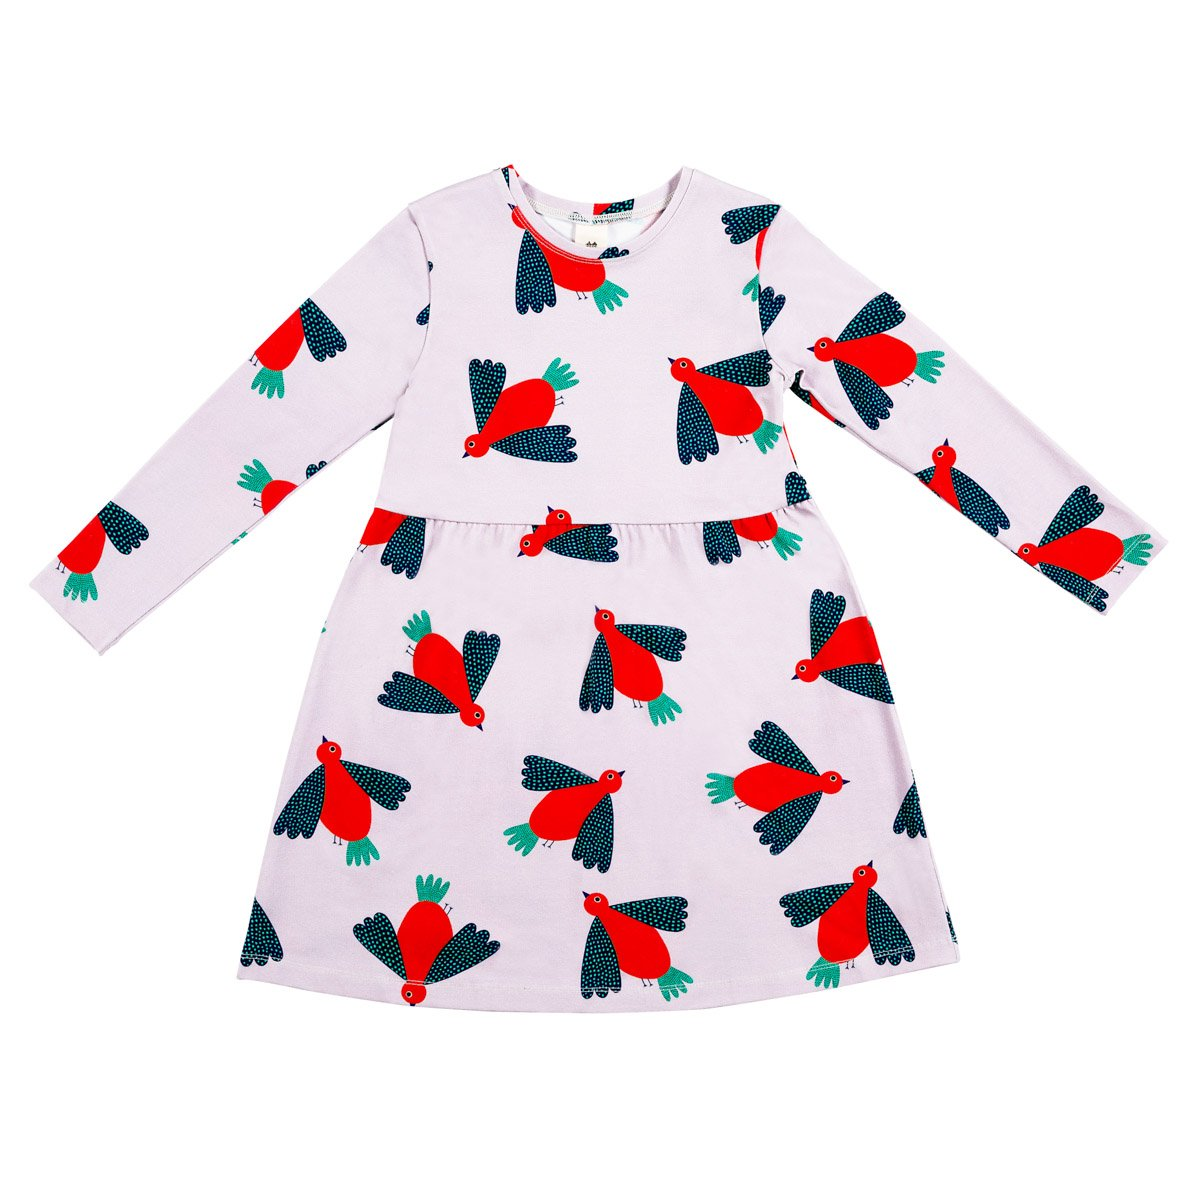 Flights Of Fancy Baby Dress by Don't Grow Up